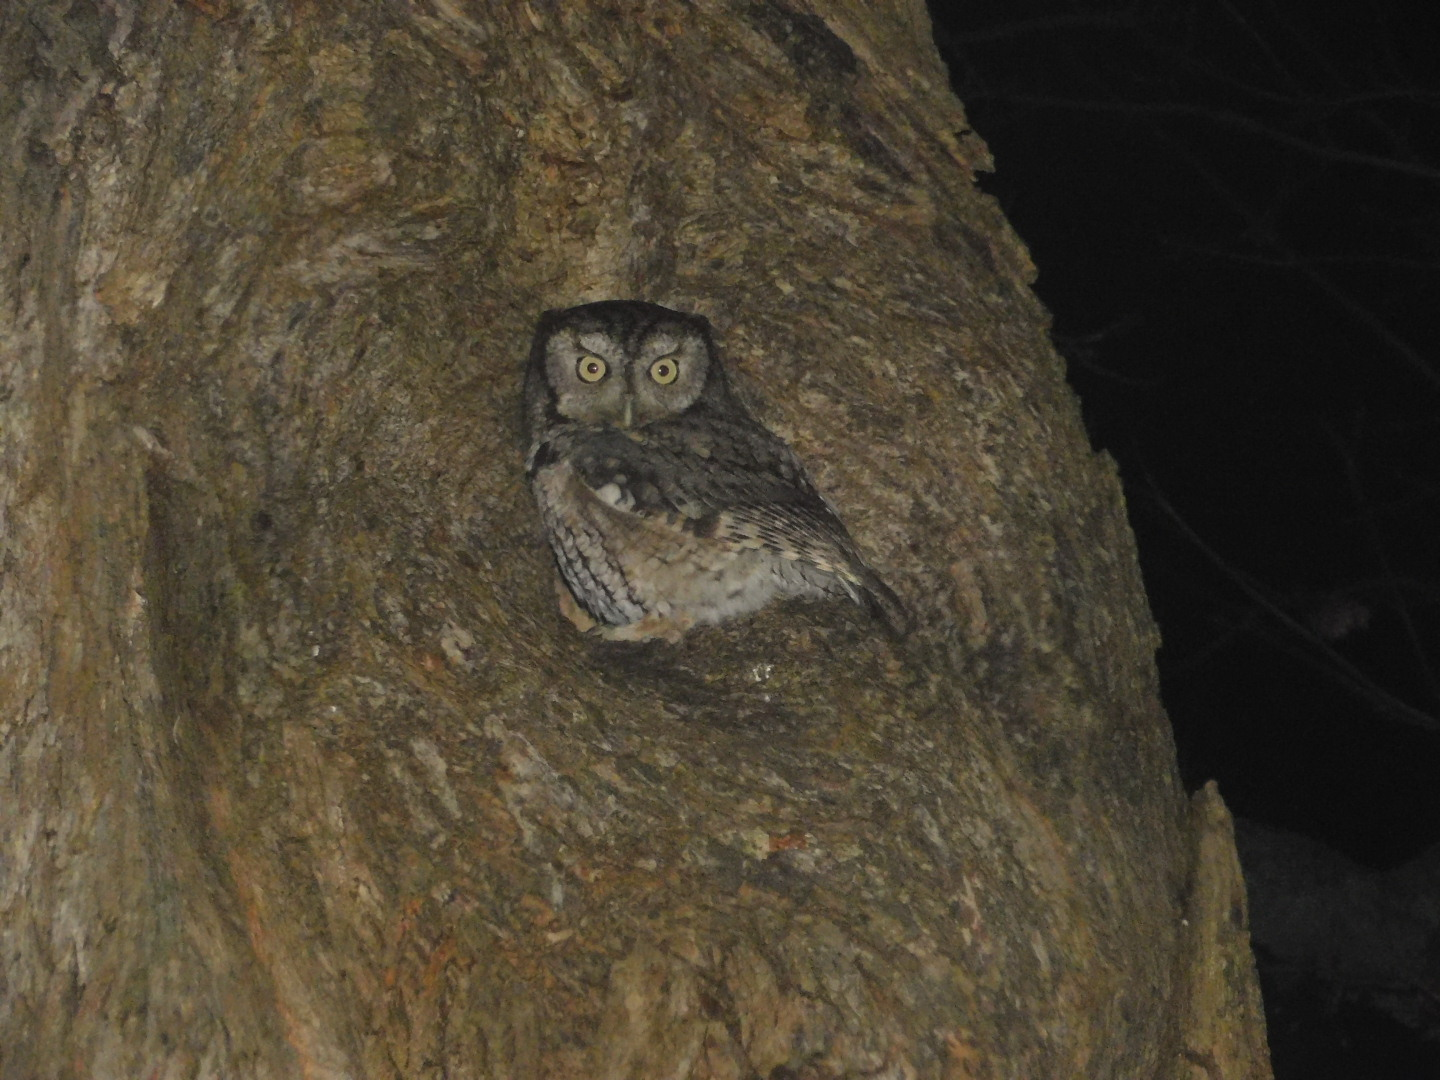 Eastern Screech Owl by Sandy Funtal